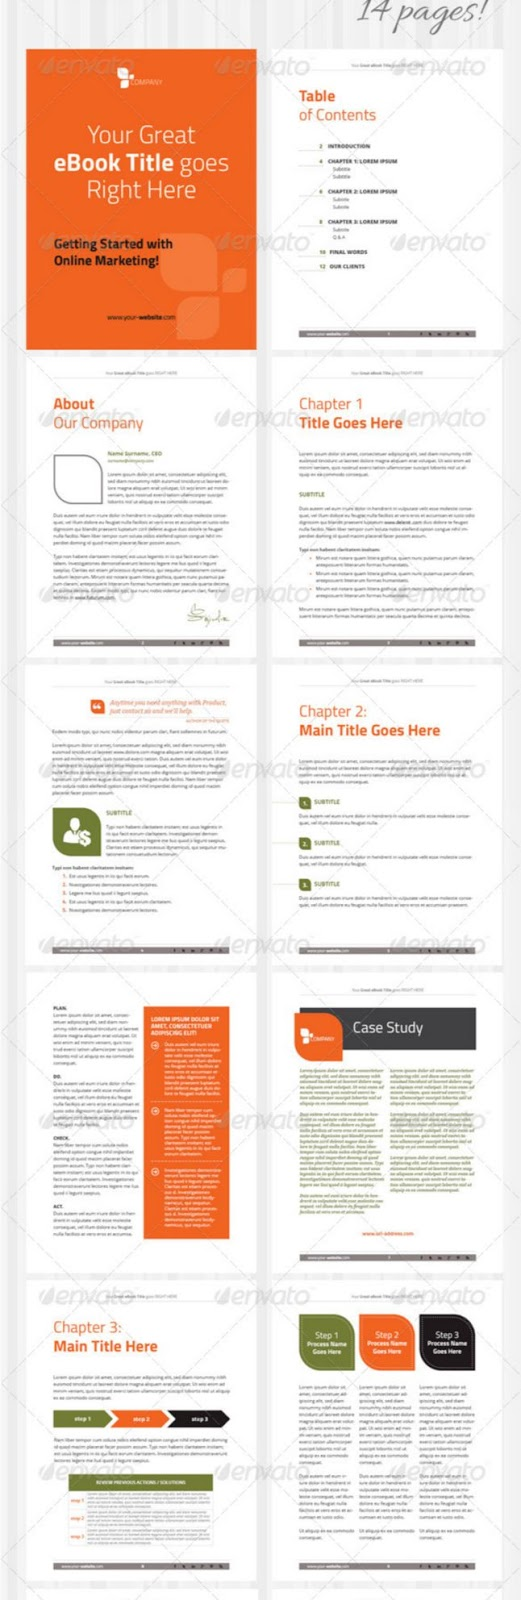 67 Best eBook Templates InDesign & ePub Format To Easily Create ...